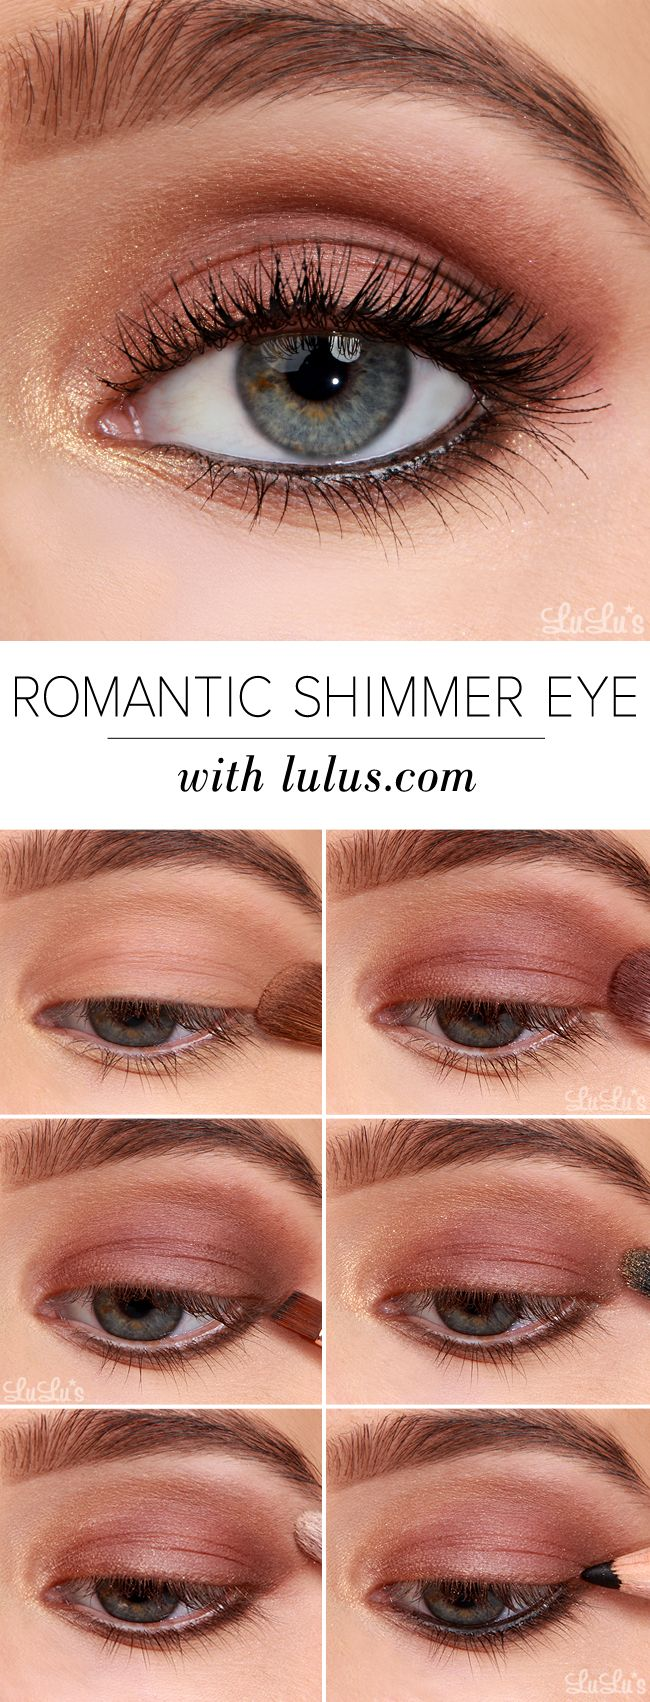 How-To: Romantic Shimmer Eyeshadow Tutorial